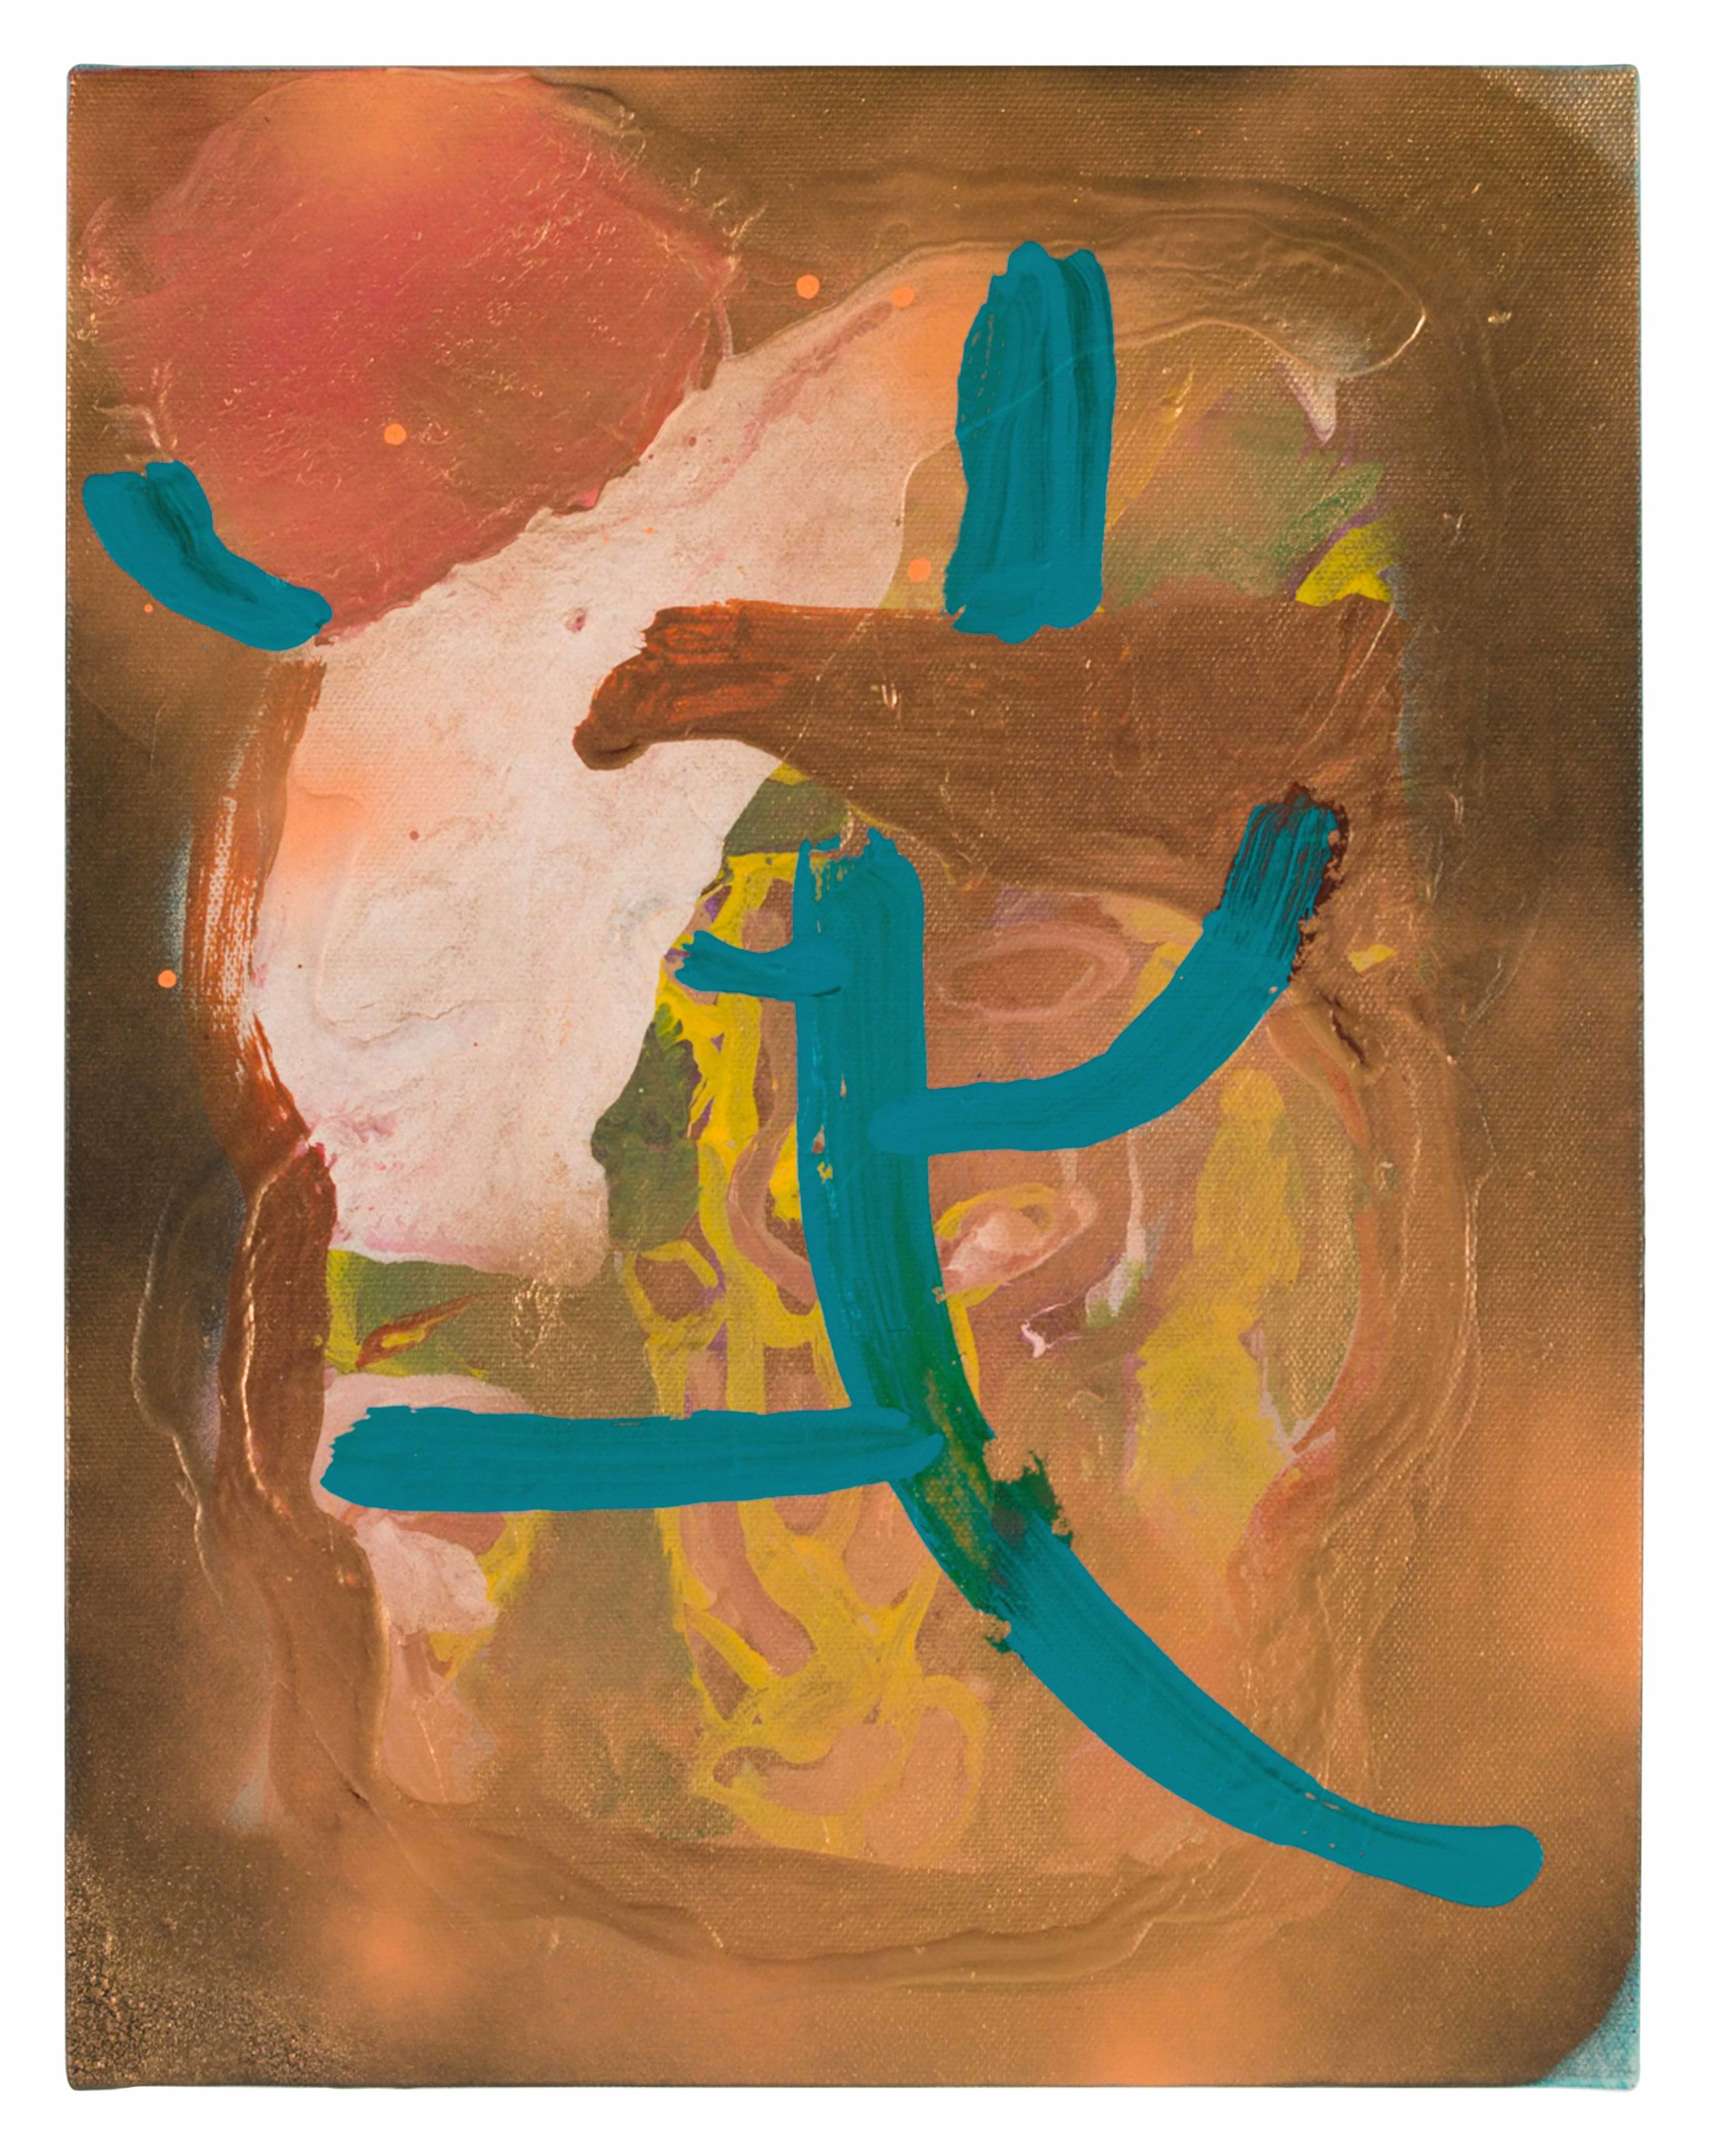 Drew Beattie and Ben Shepard  Blue Limb  2015 acrylic and spray paint on canvas 14 x 11 inches